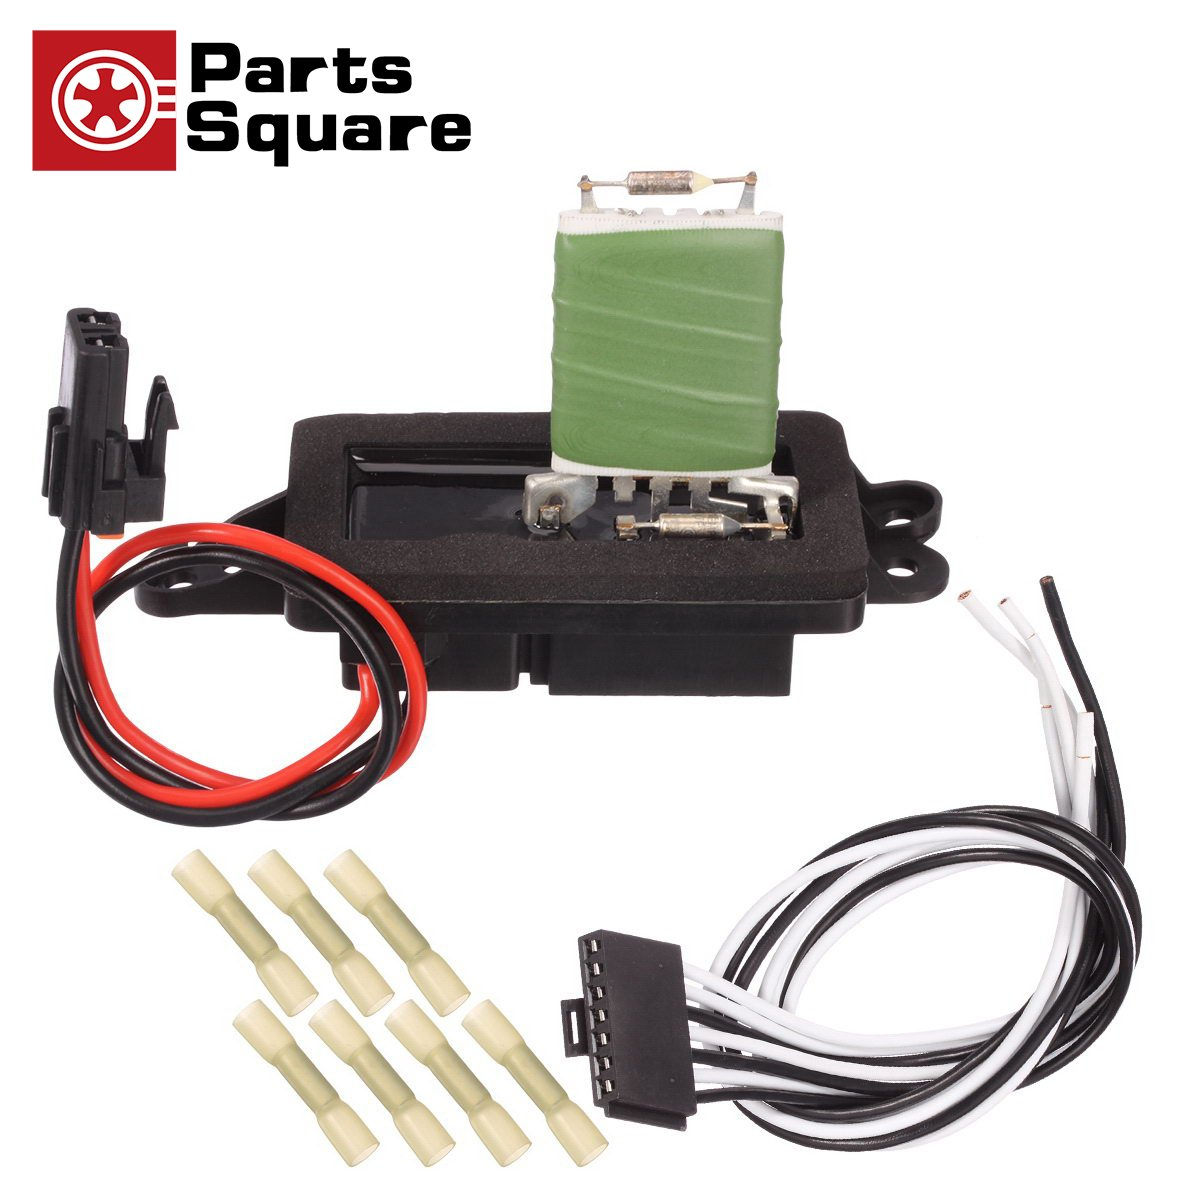 Partssquare Heater Blower Motor Resistor 89019100 Volvo Wiring Harness Problems Replacement For 2004 2005 2006 2007 Buick Rainier 2008 2009 Chevrolet